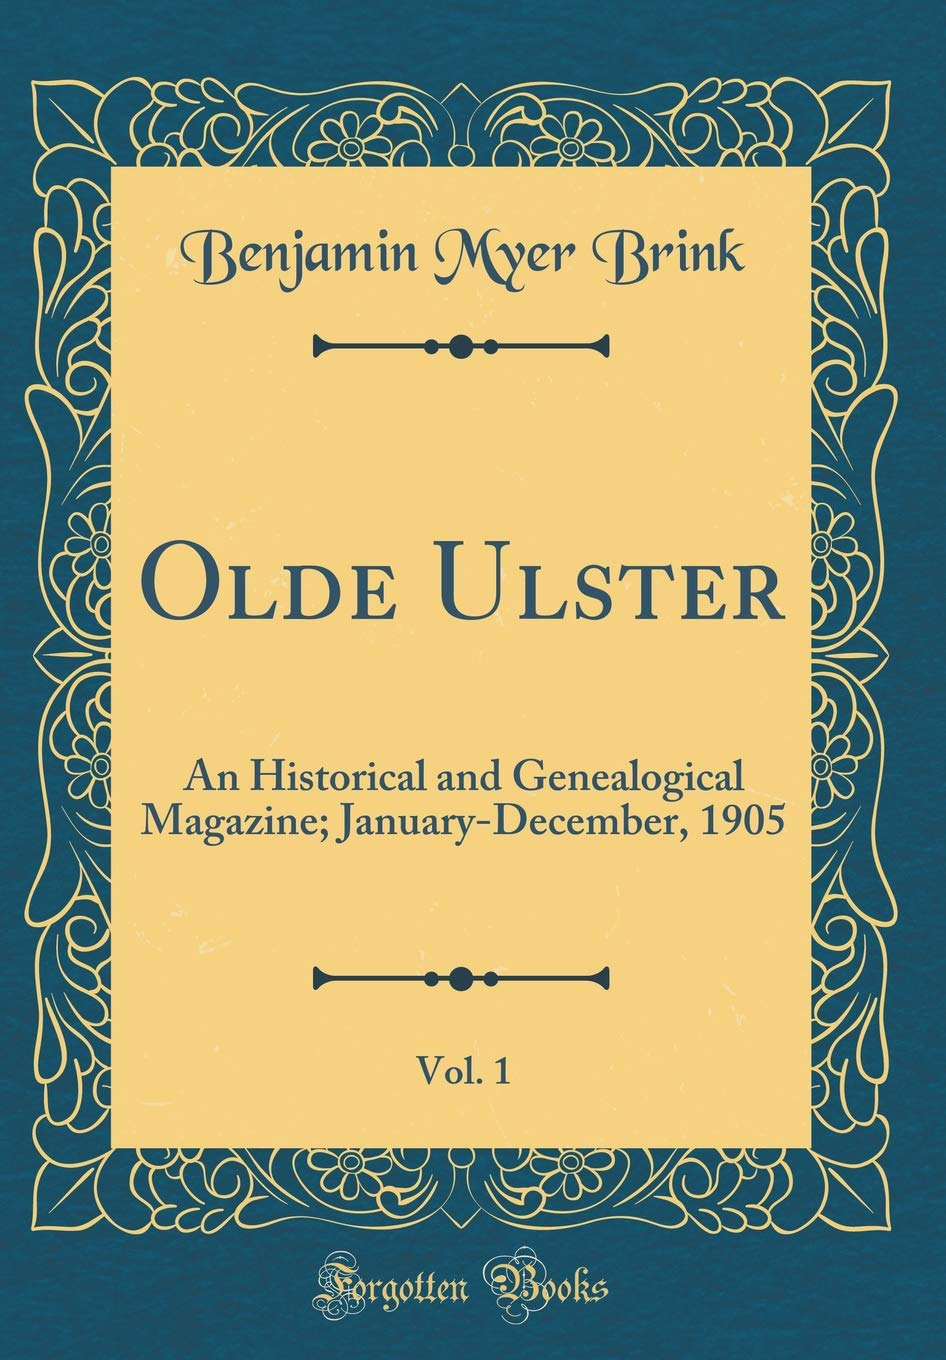 Olde Ulster, Vol. 1: An Historical and Genealogical Magazine; January-December, 1905 (Classic Reprint) ebook